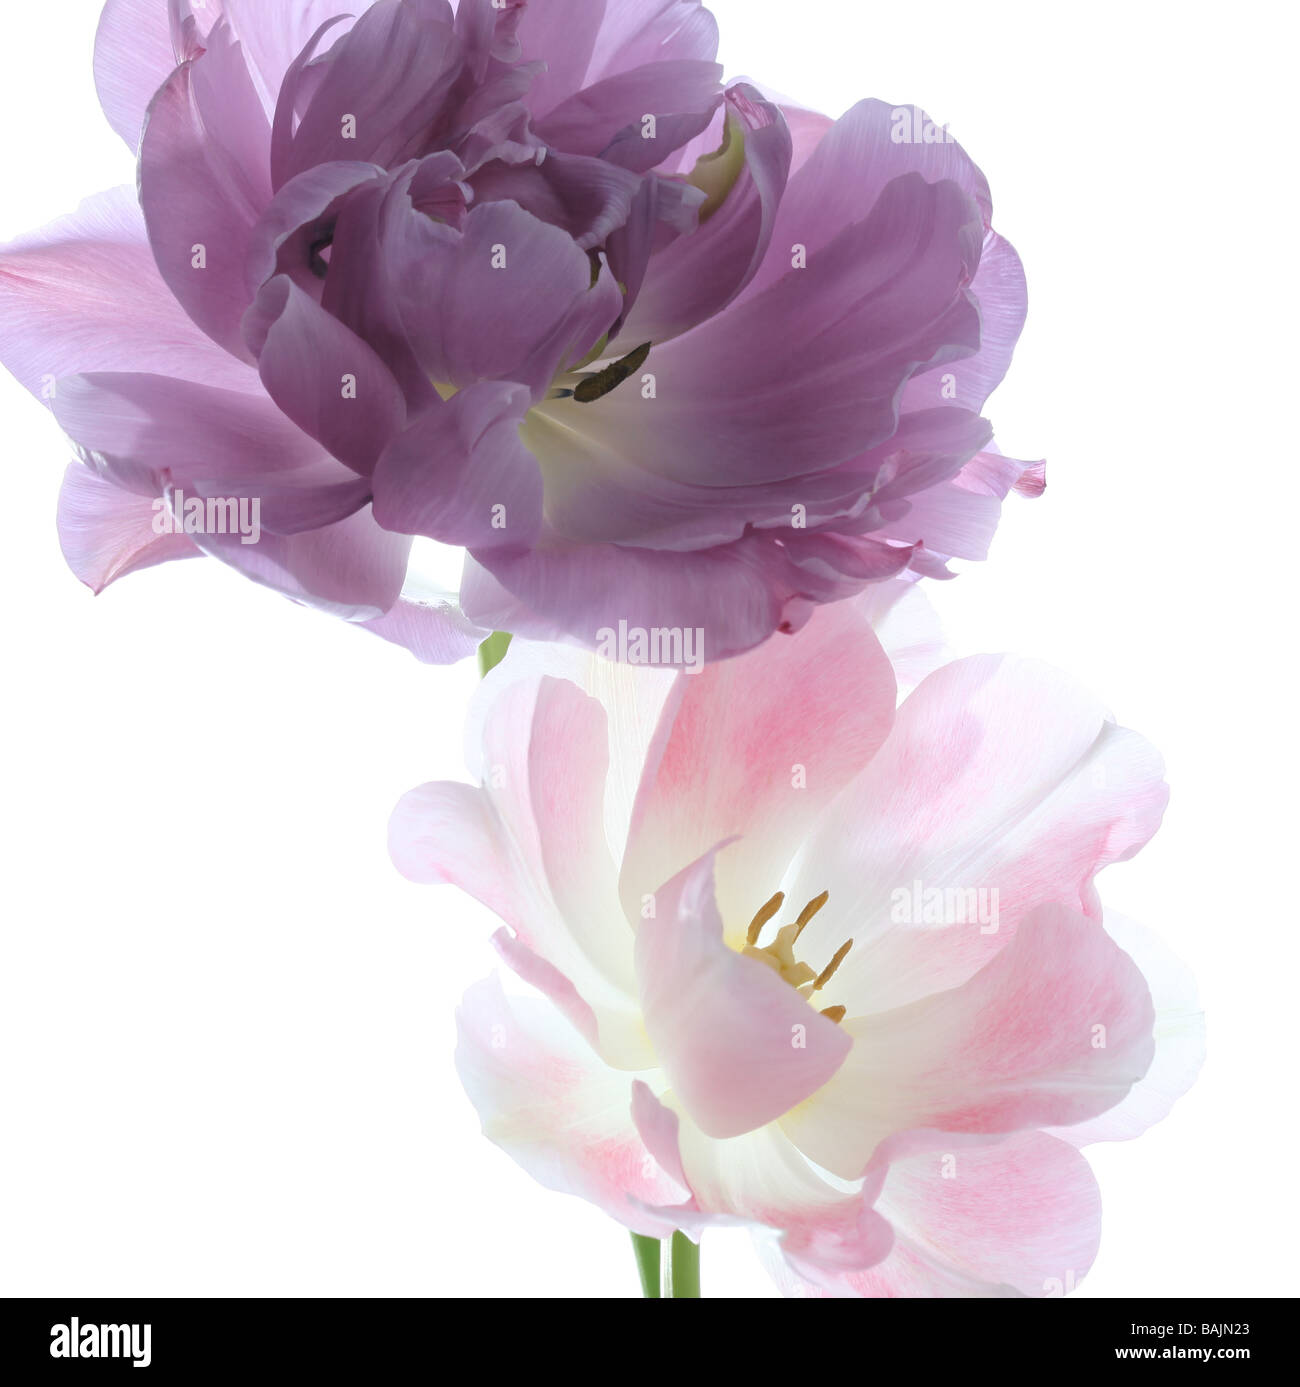 Two tulips Lilac Perfection and Mount Tacoma arranged on a white background - Stock Image